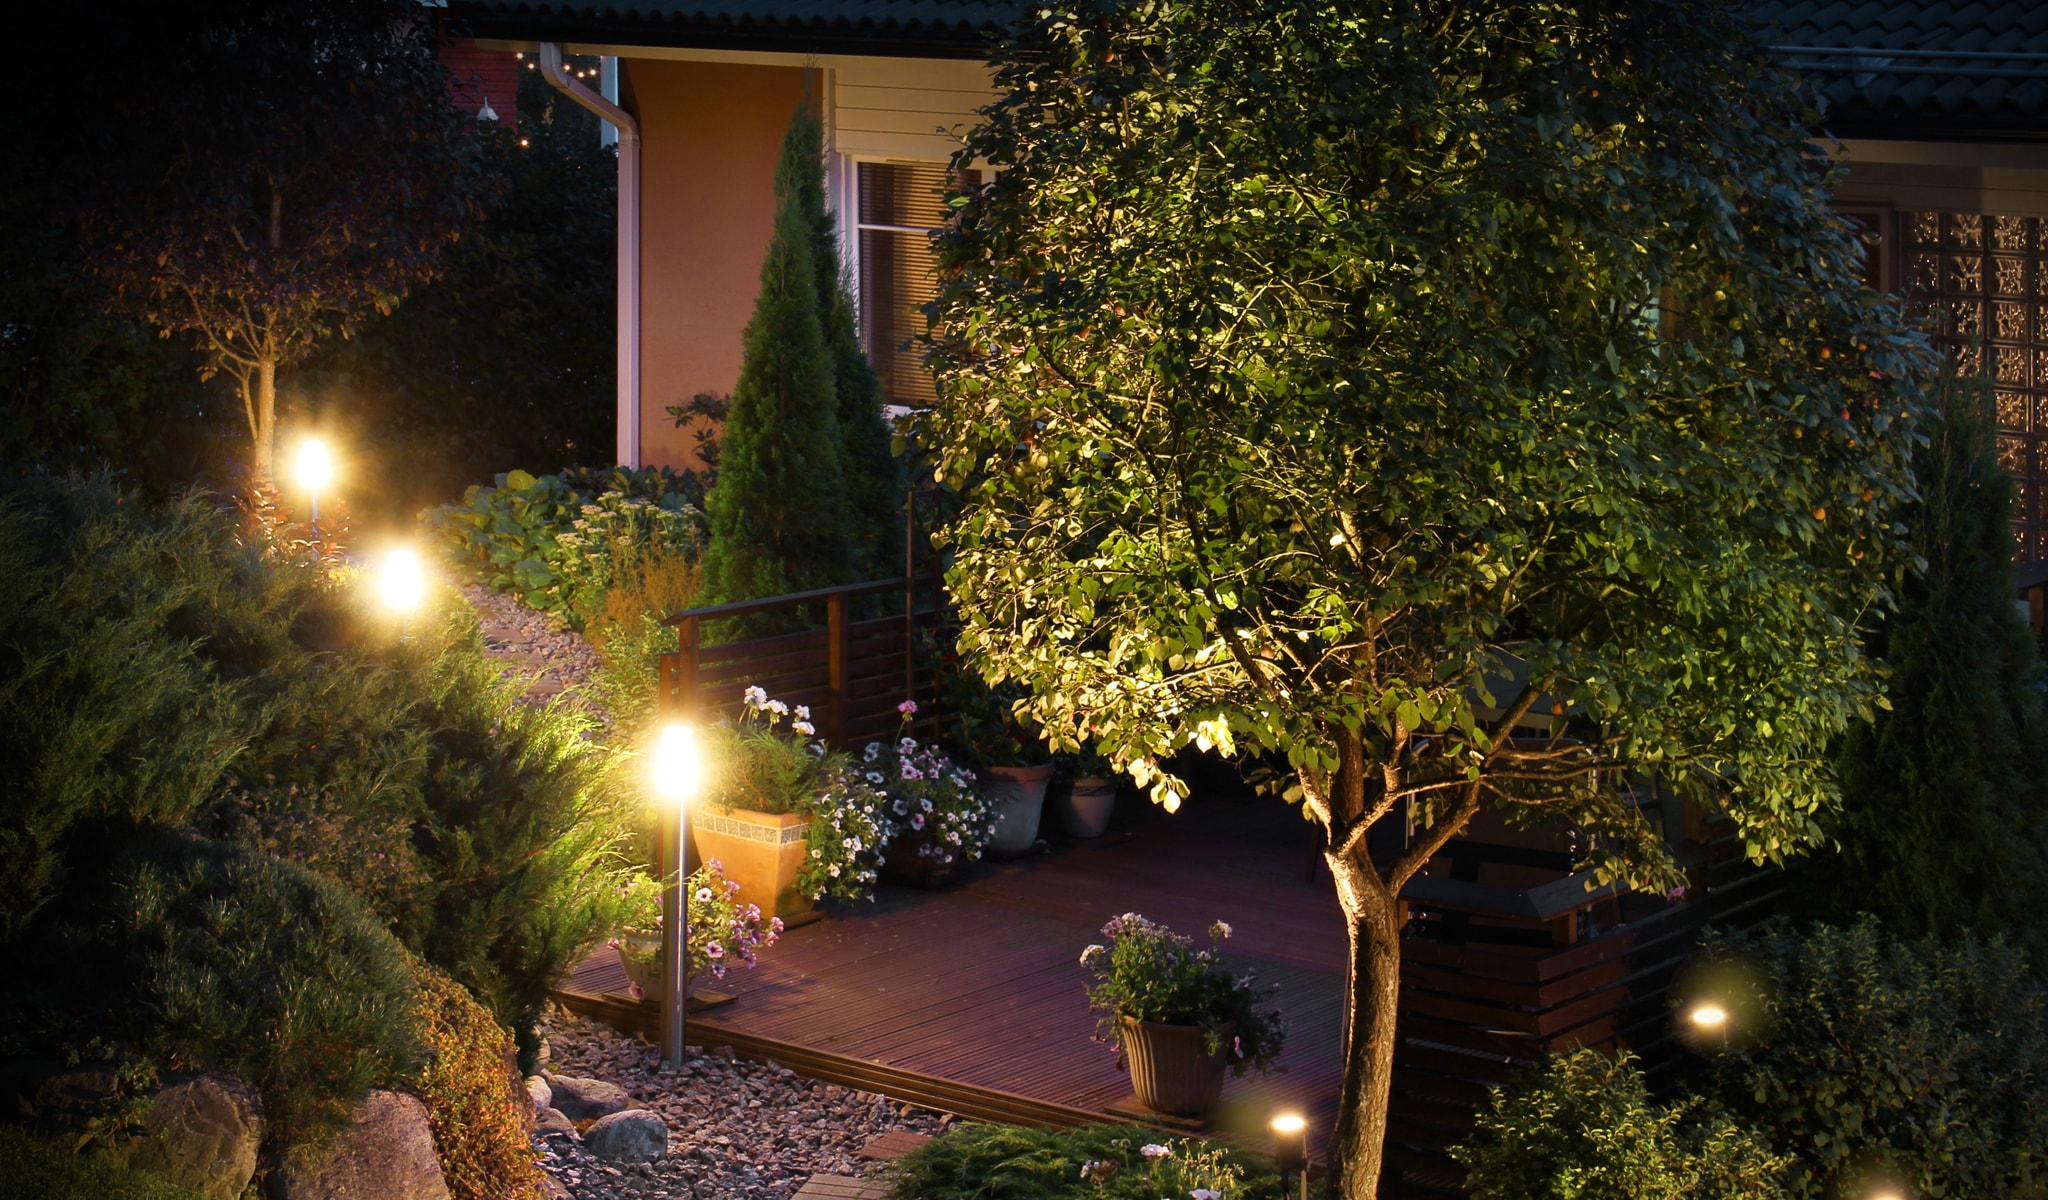 backyard patio with trees and landscape lighting